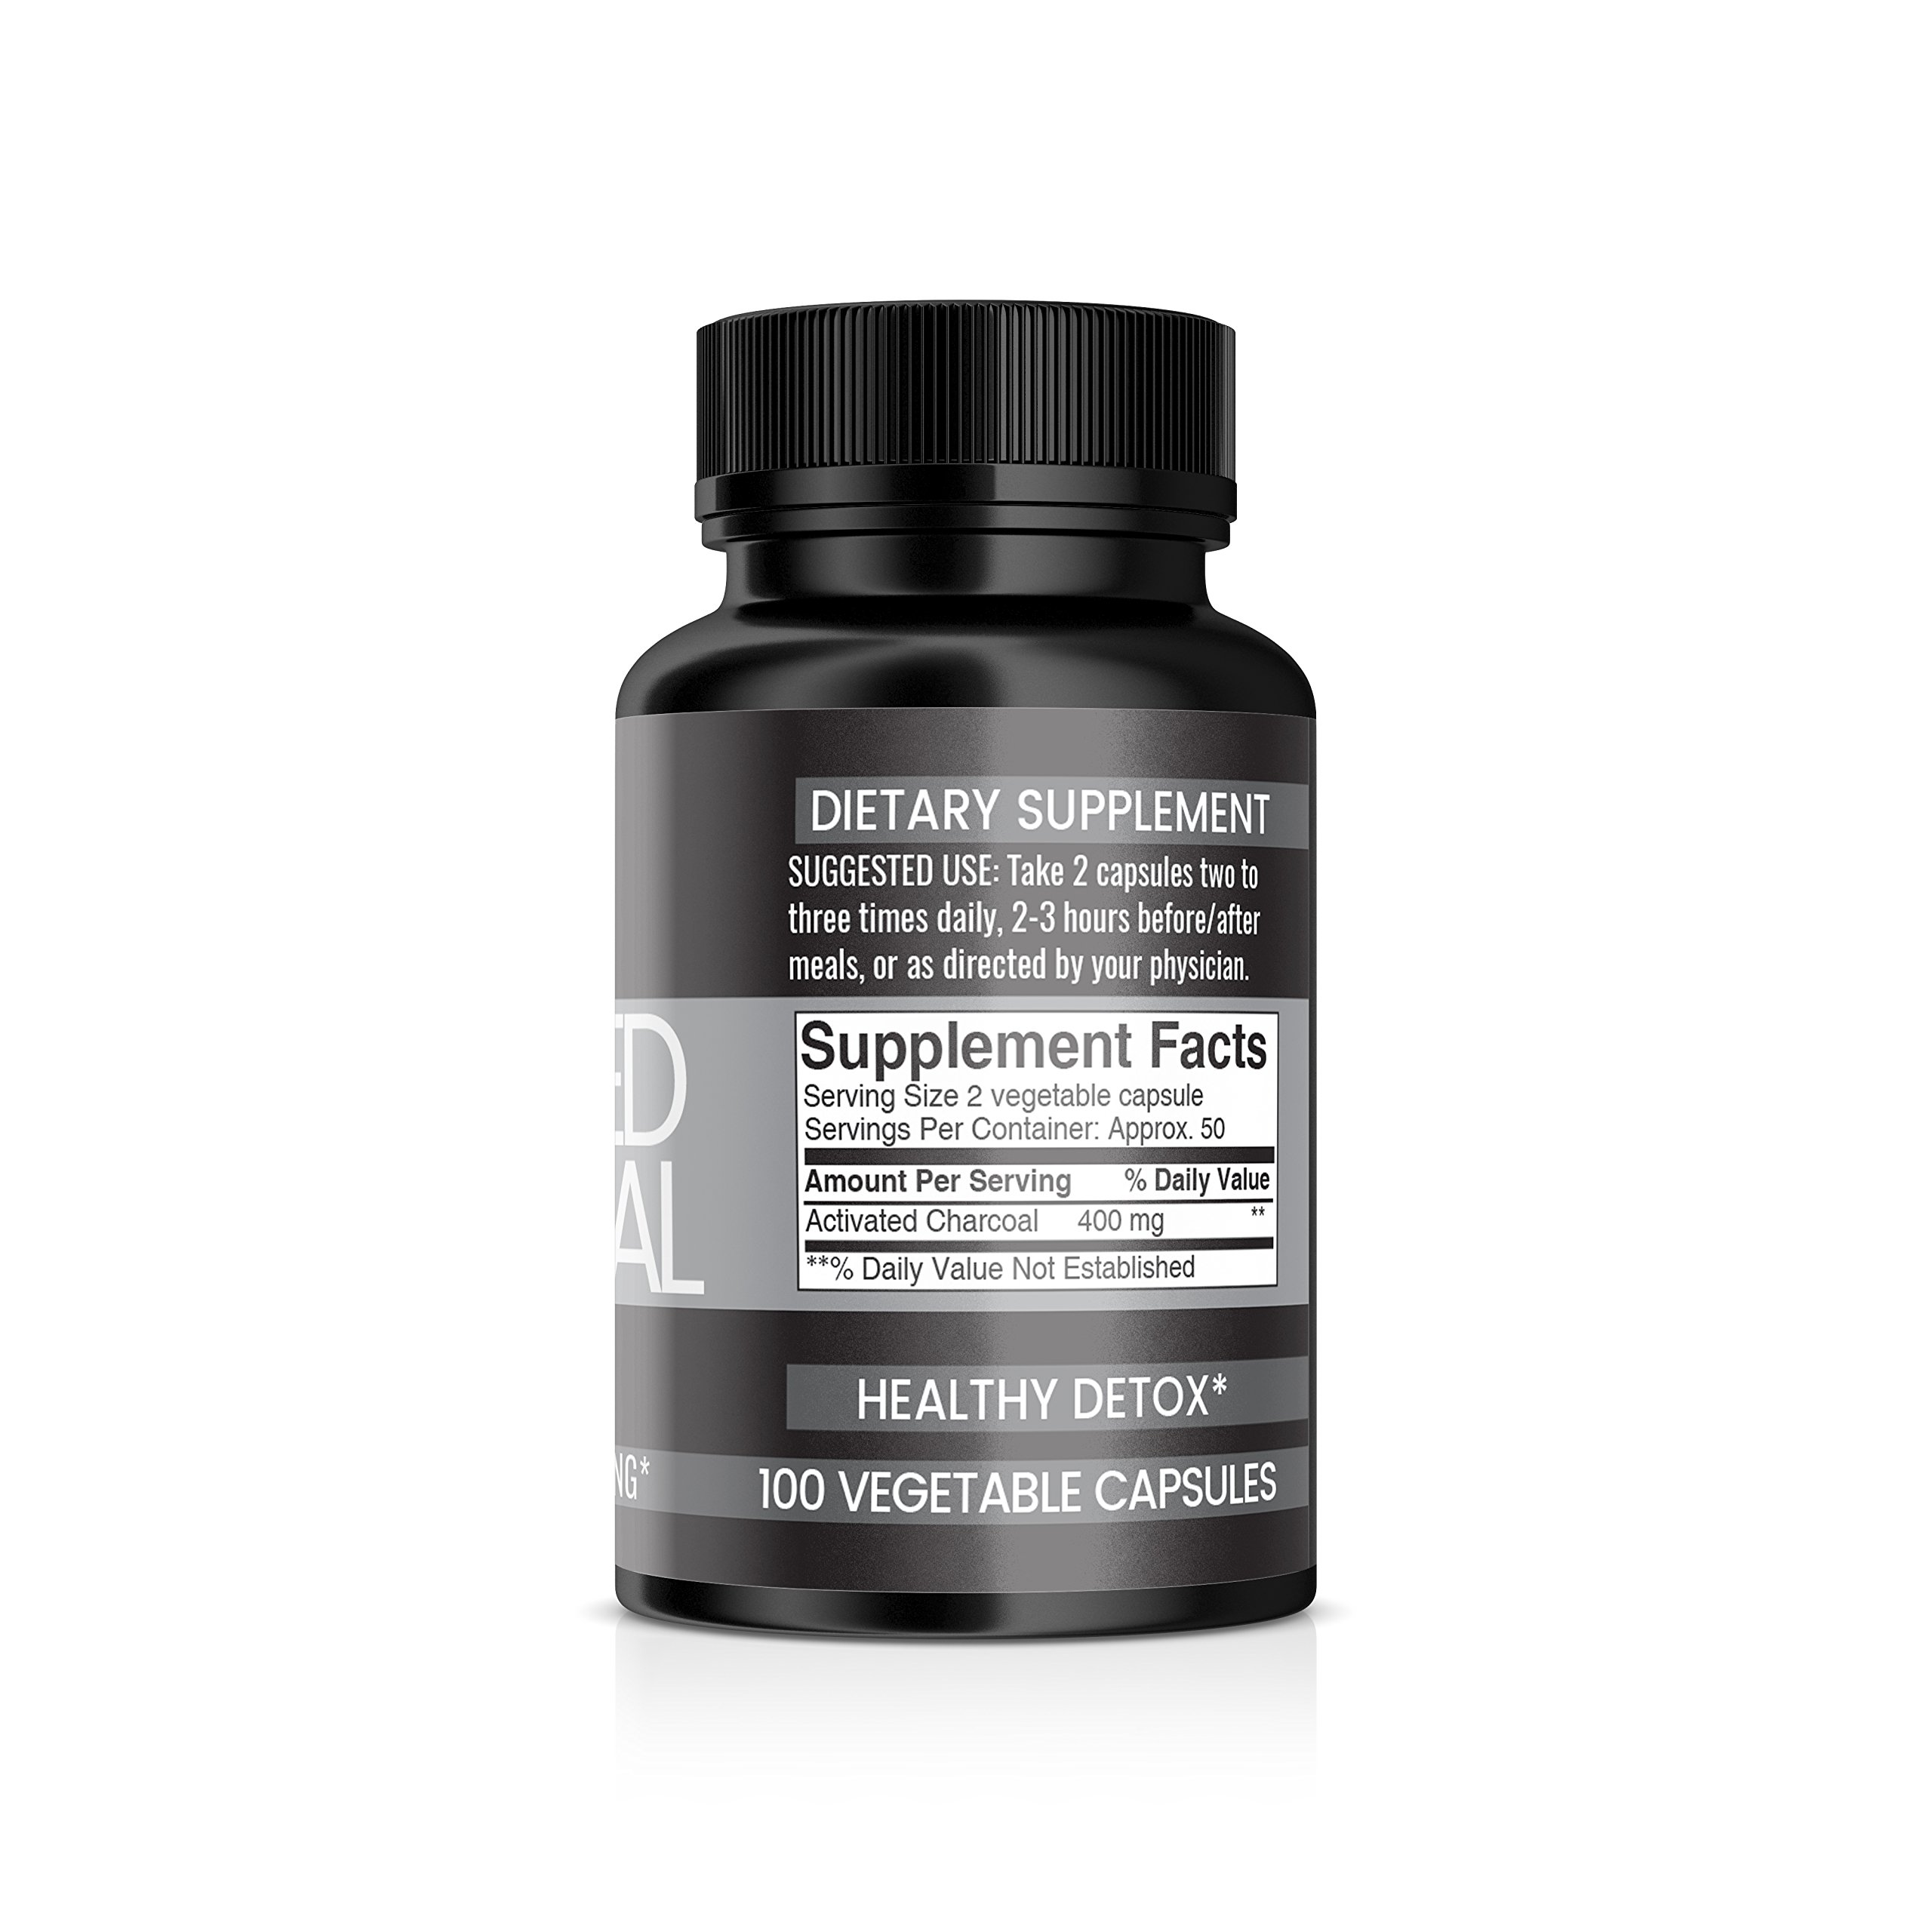 Pure Organic Ingredients, Activated Charcoal Capsules, 400 mg per Serving, Reduces Gas & Bloating, Healthy Natural Detoxification, Veggie Caps, Money Back Guarantee by poi (Image #3)